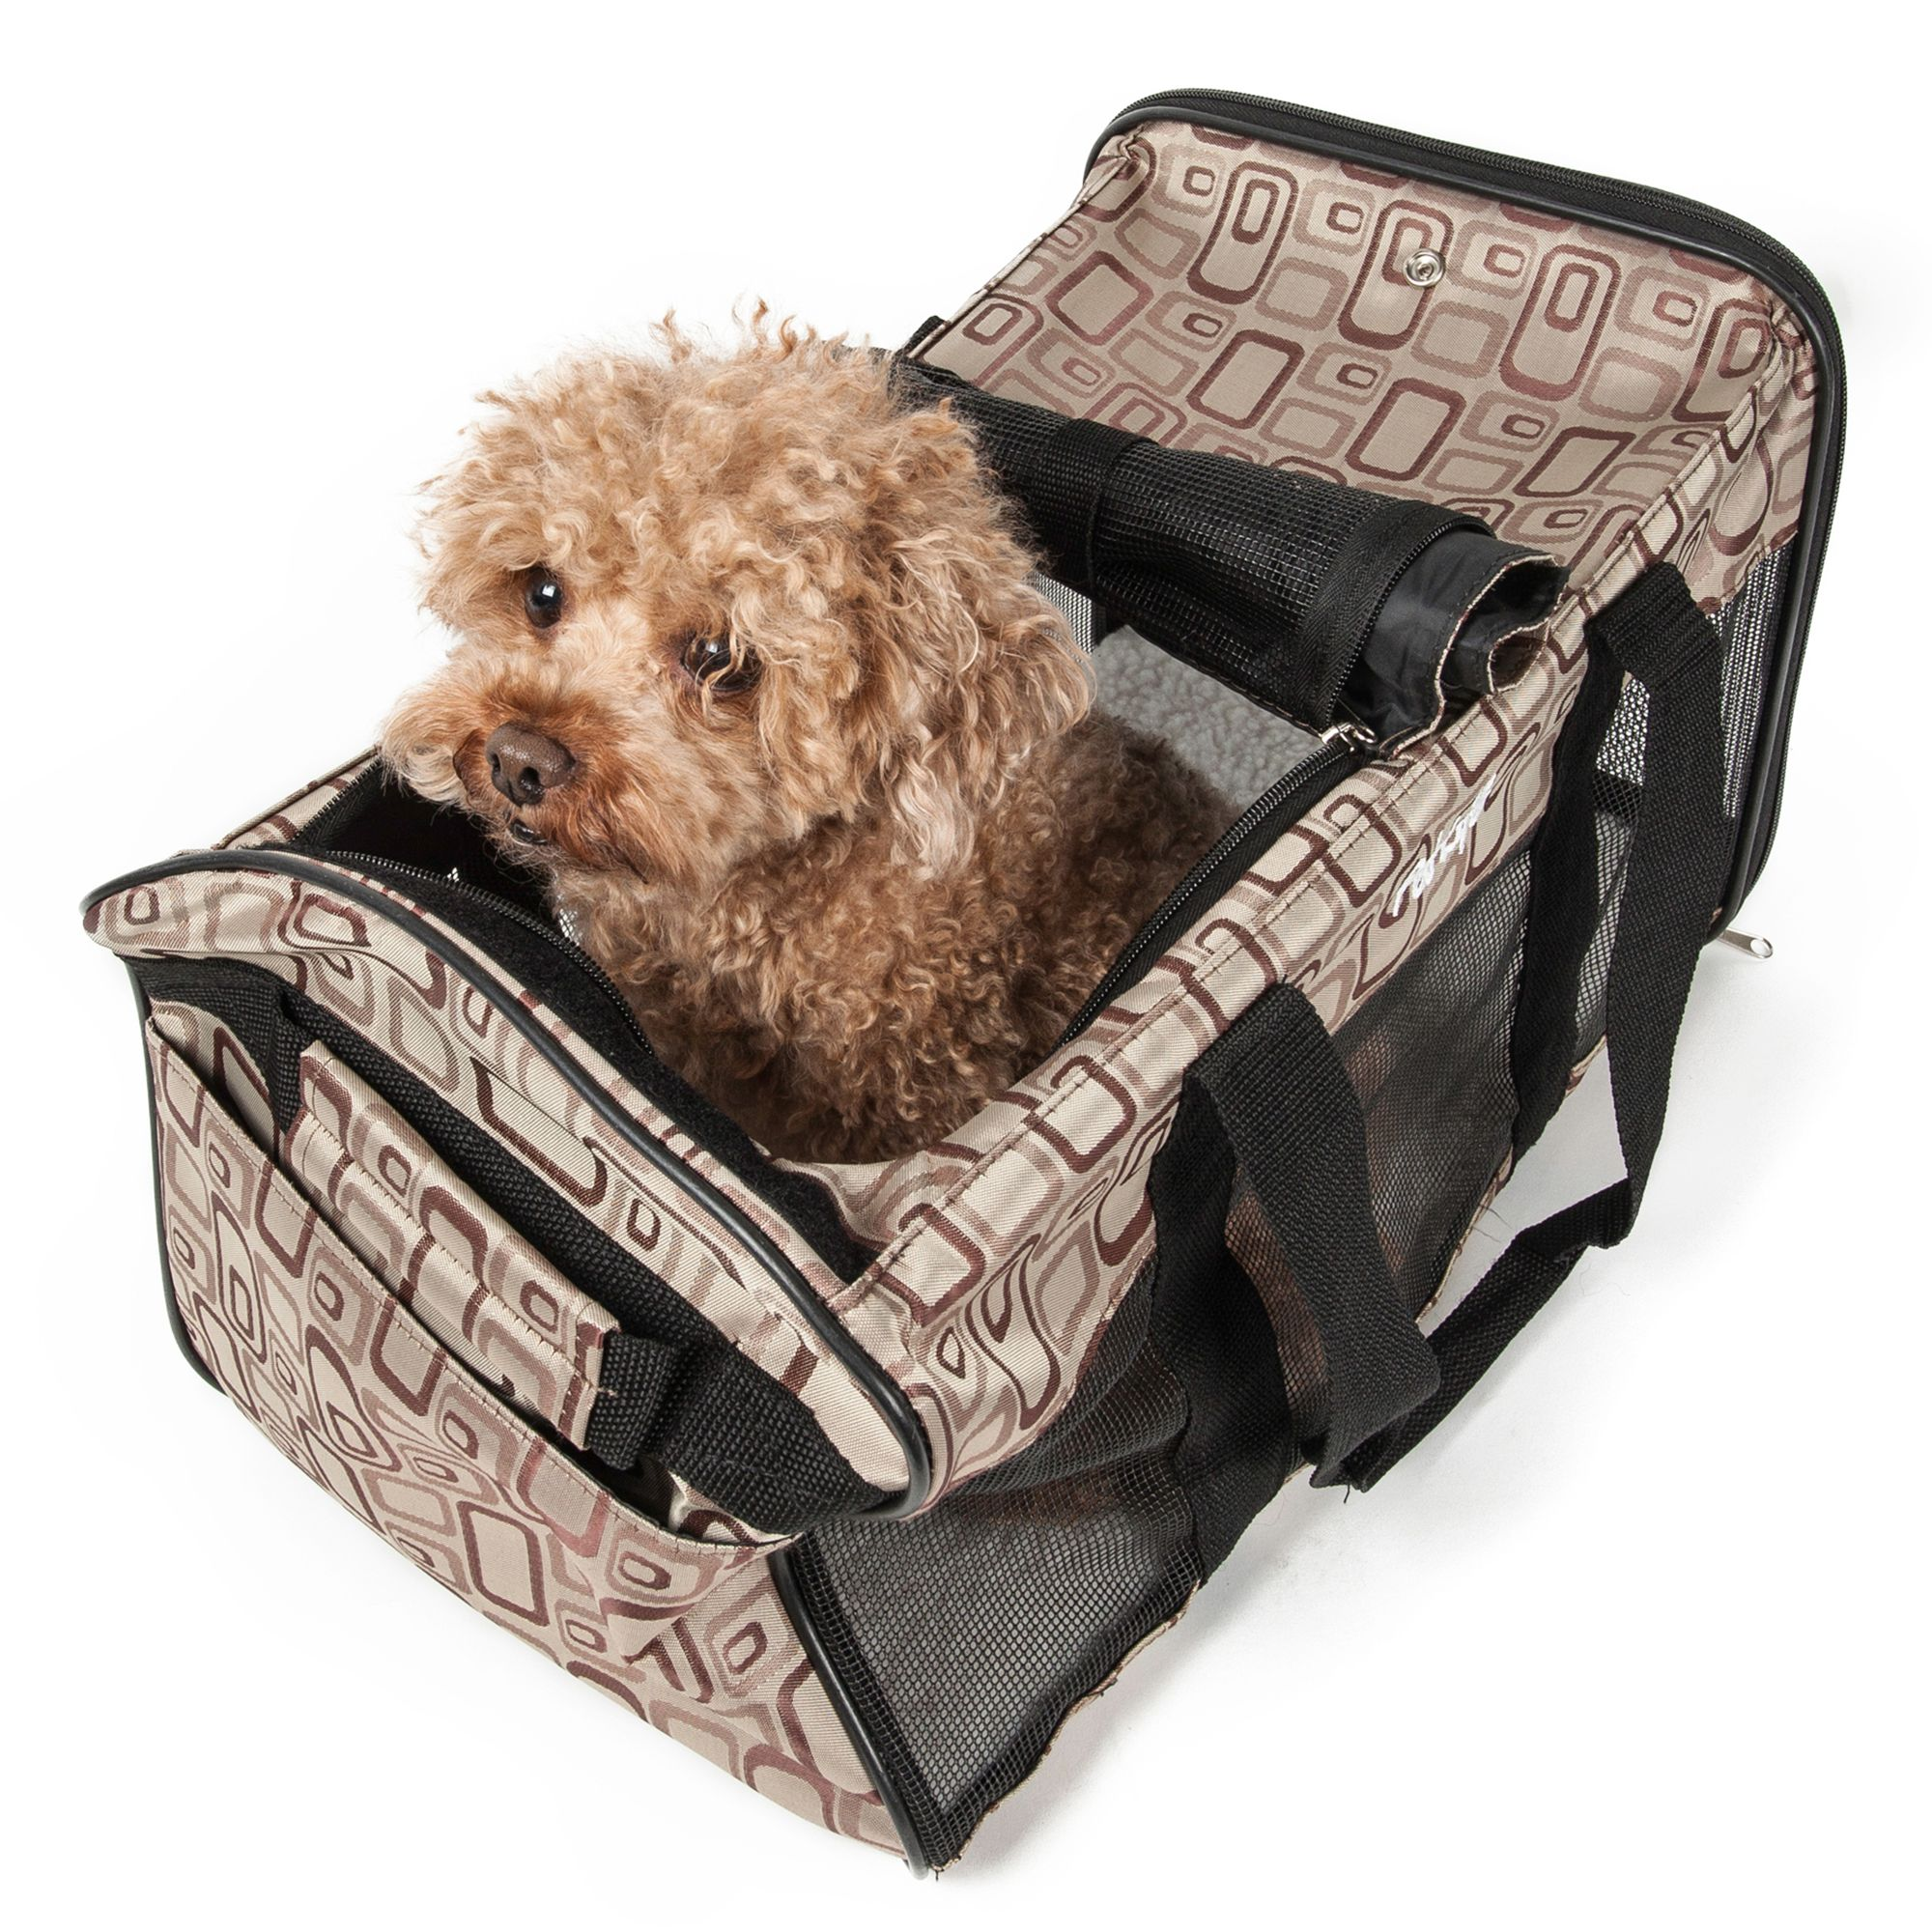 Pet Life Airline Approved Casual Pet Carrier Size 18.9l X 11w X 11h Plaid